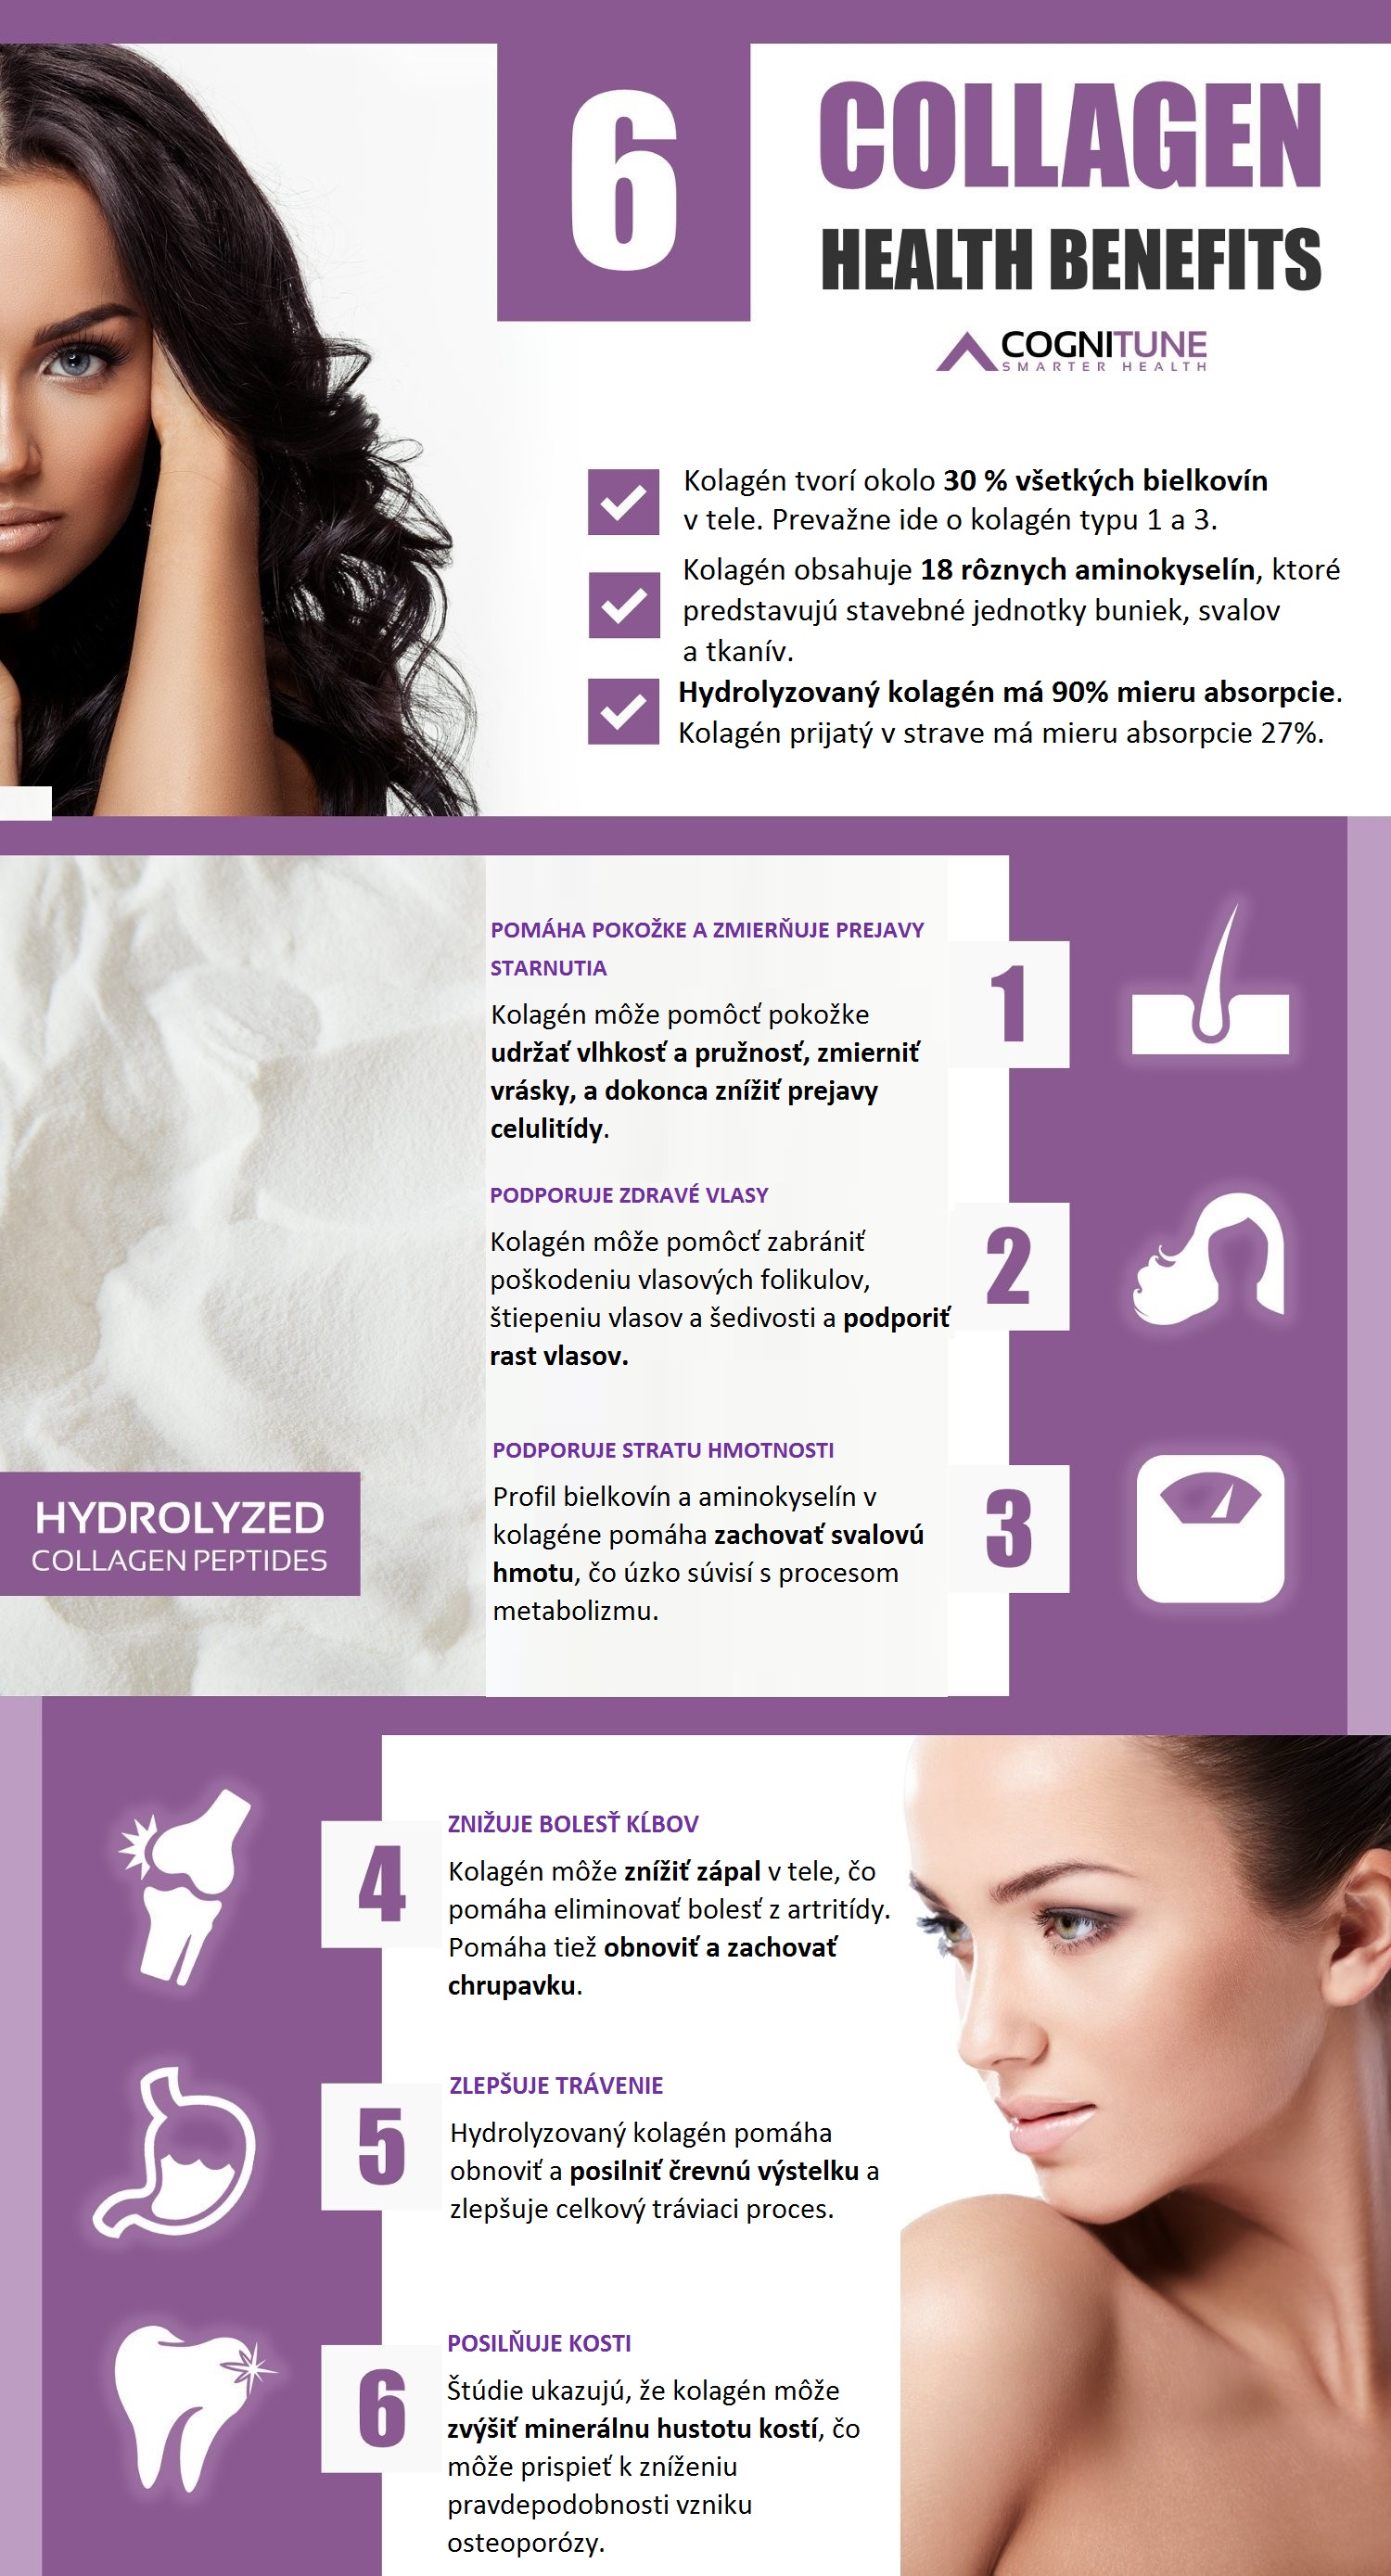 kolagendrink collagen benefits